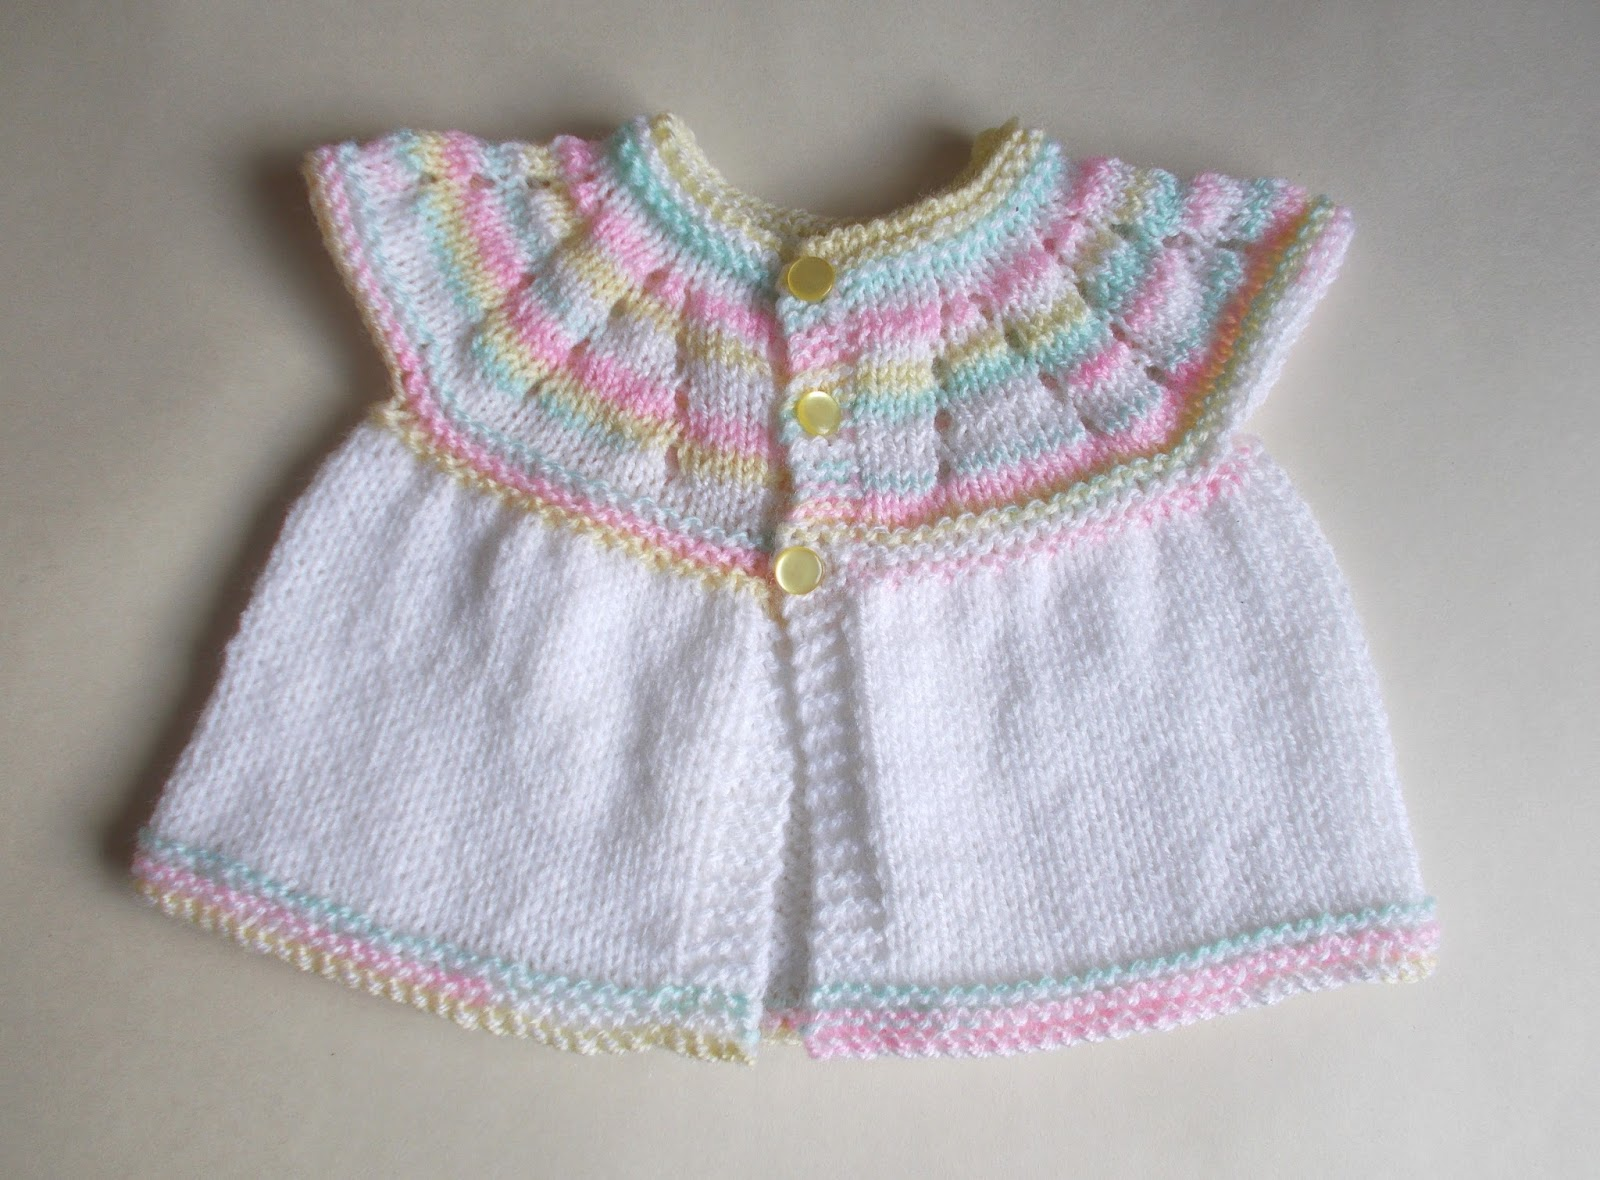 4cc73cd2f904 Marianna's Lazy Daisy Days: All-in-one Knitted Baby Tops